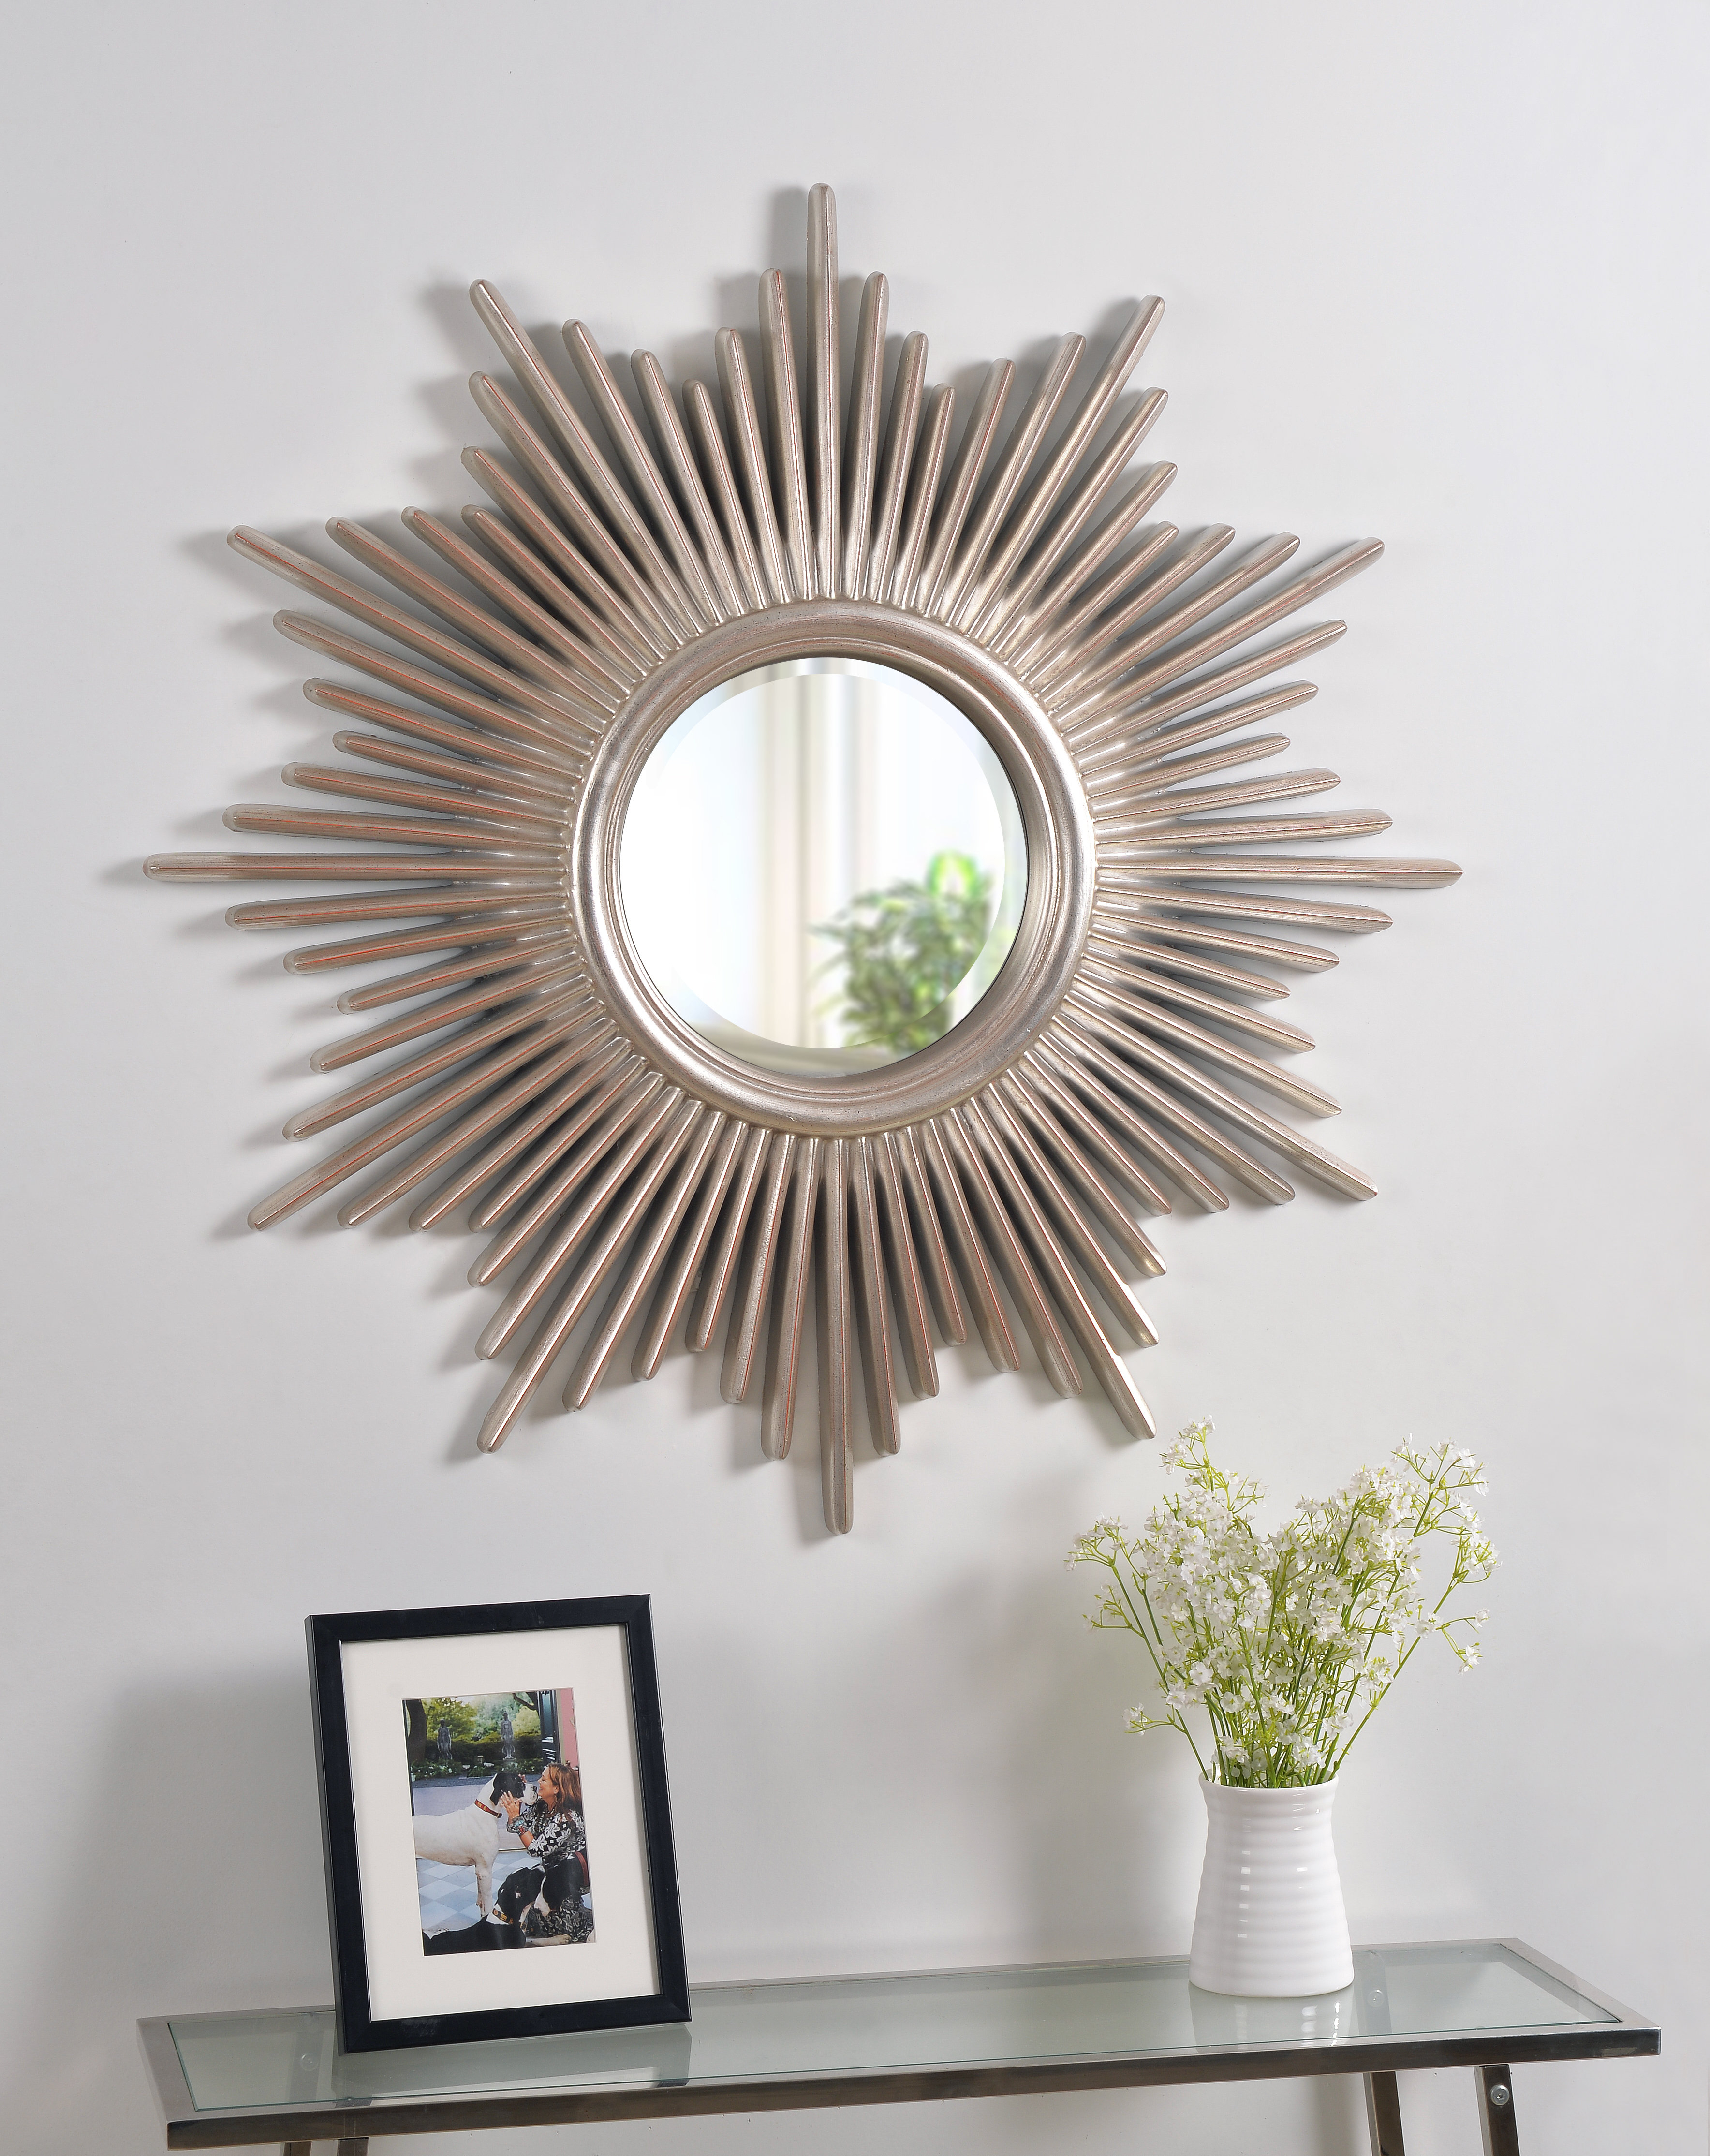 Willa Arlo Interiors Josephson Starburst Glam Beveled Accent Wall Mirror With Starburst Wall Decor By Willa Arlo Interiors (View 25 of 30)